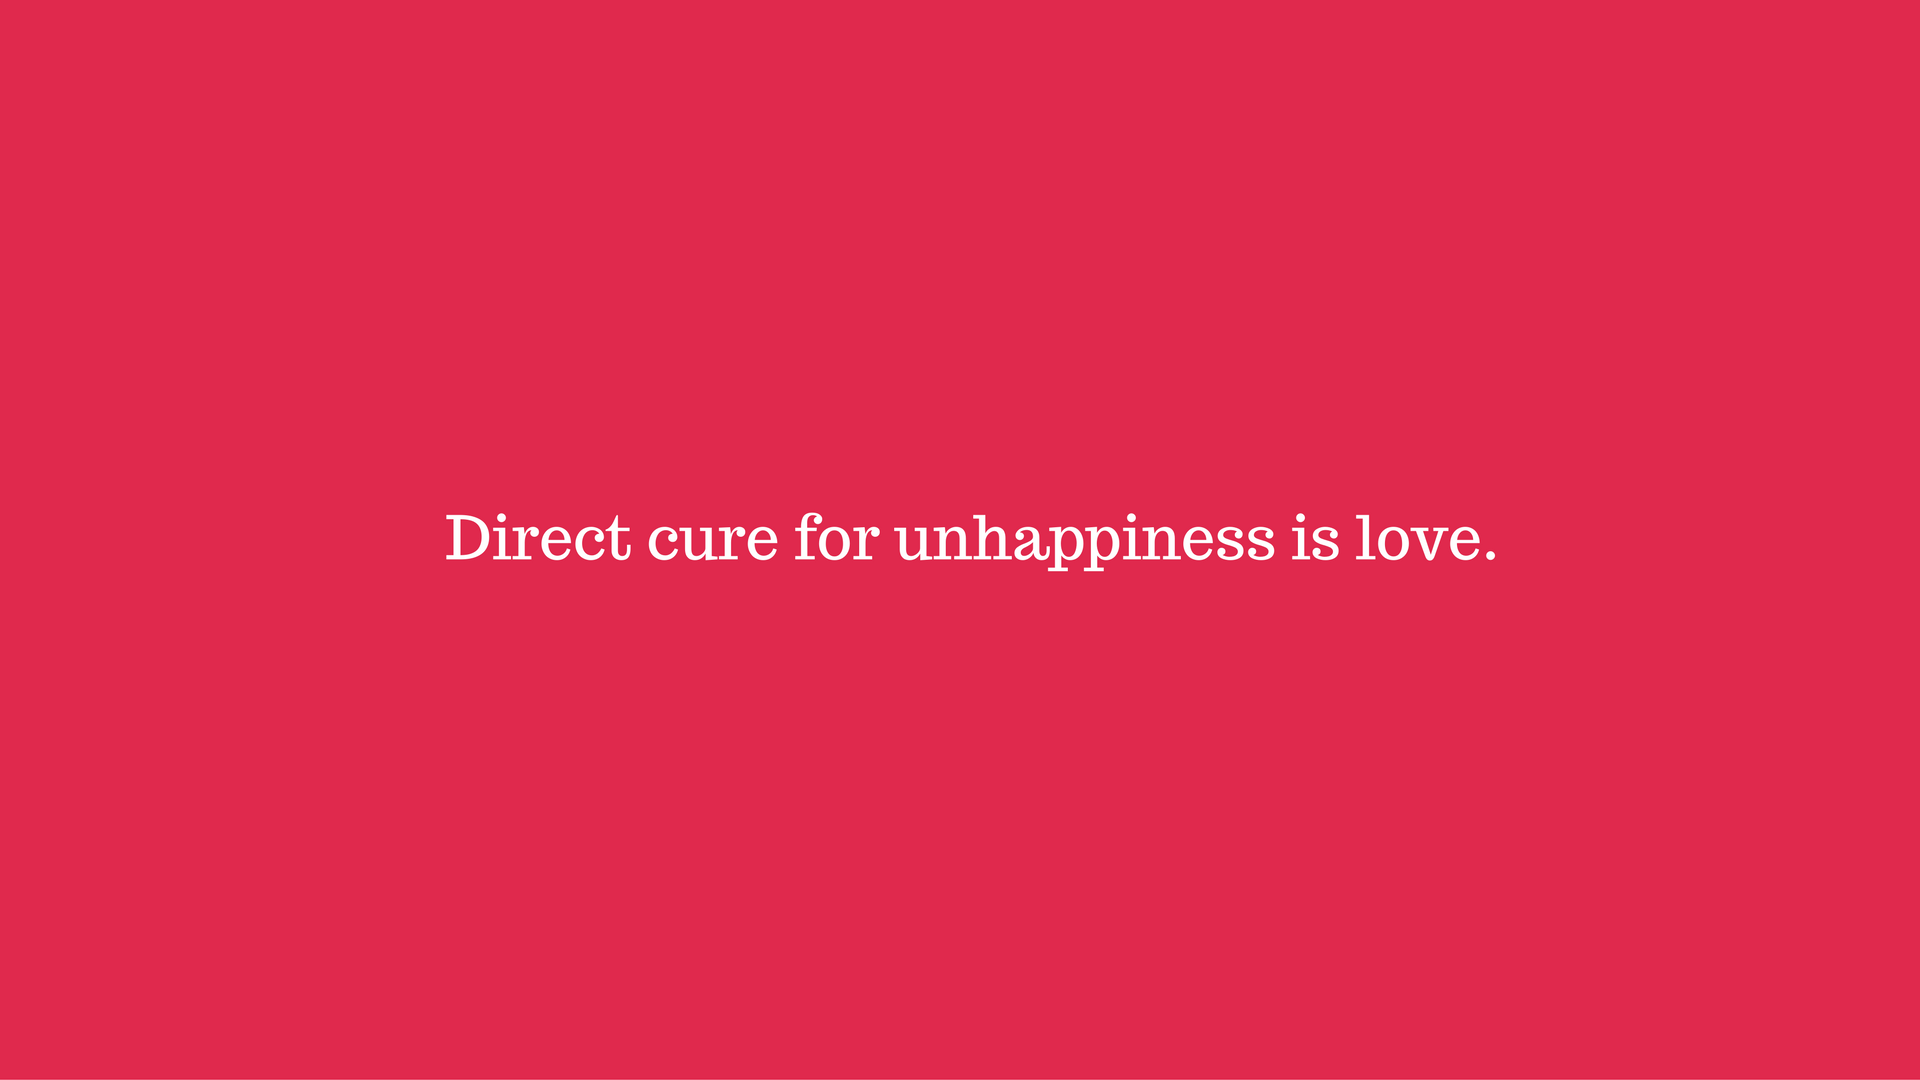 direct-cure-for-unhappiness-if-love-2